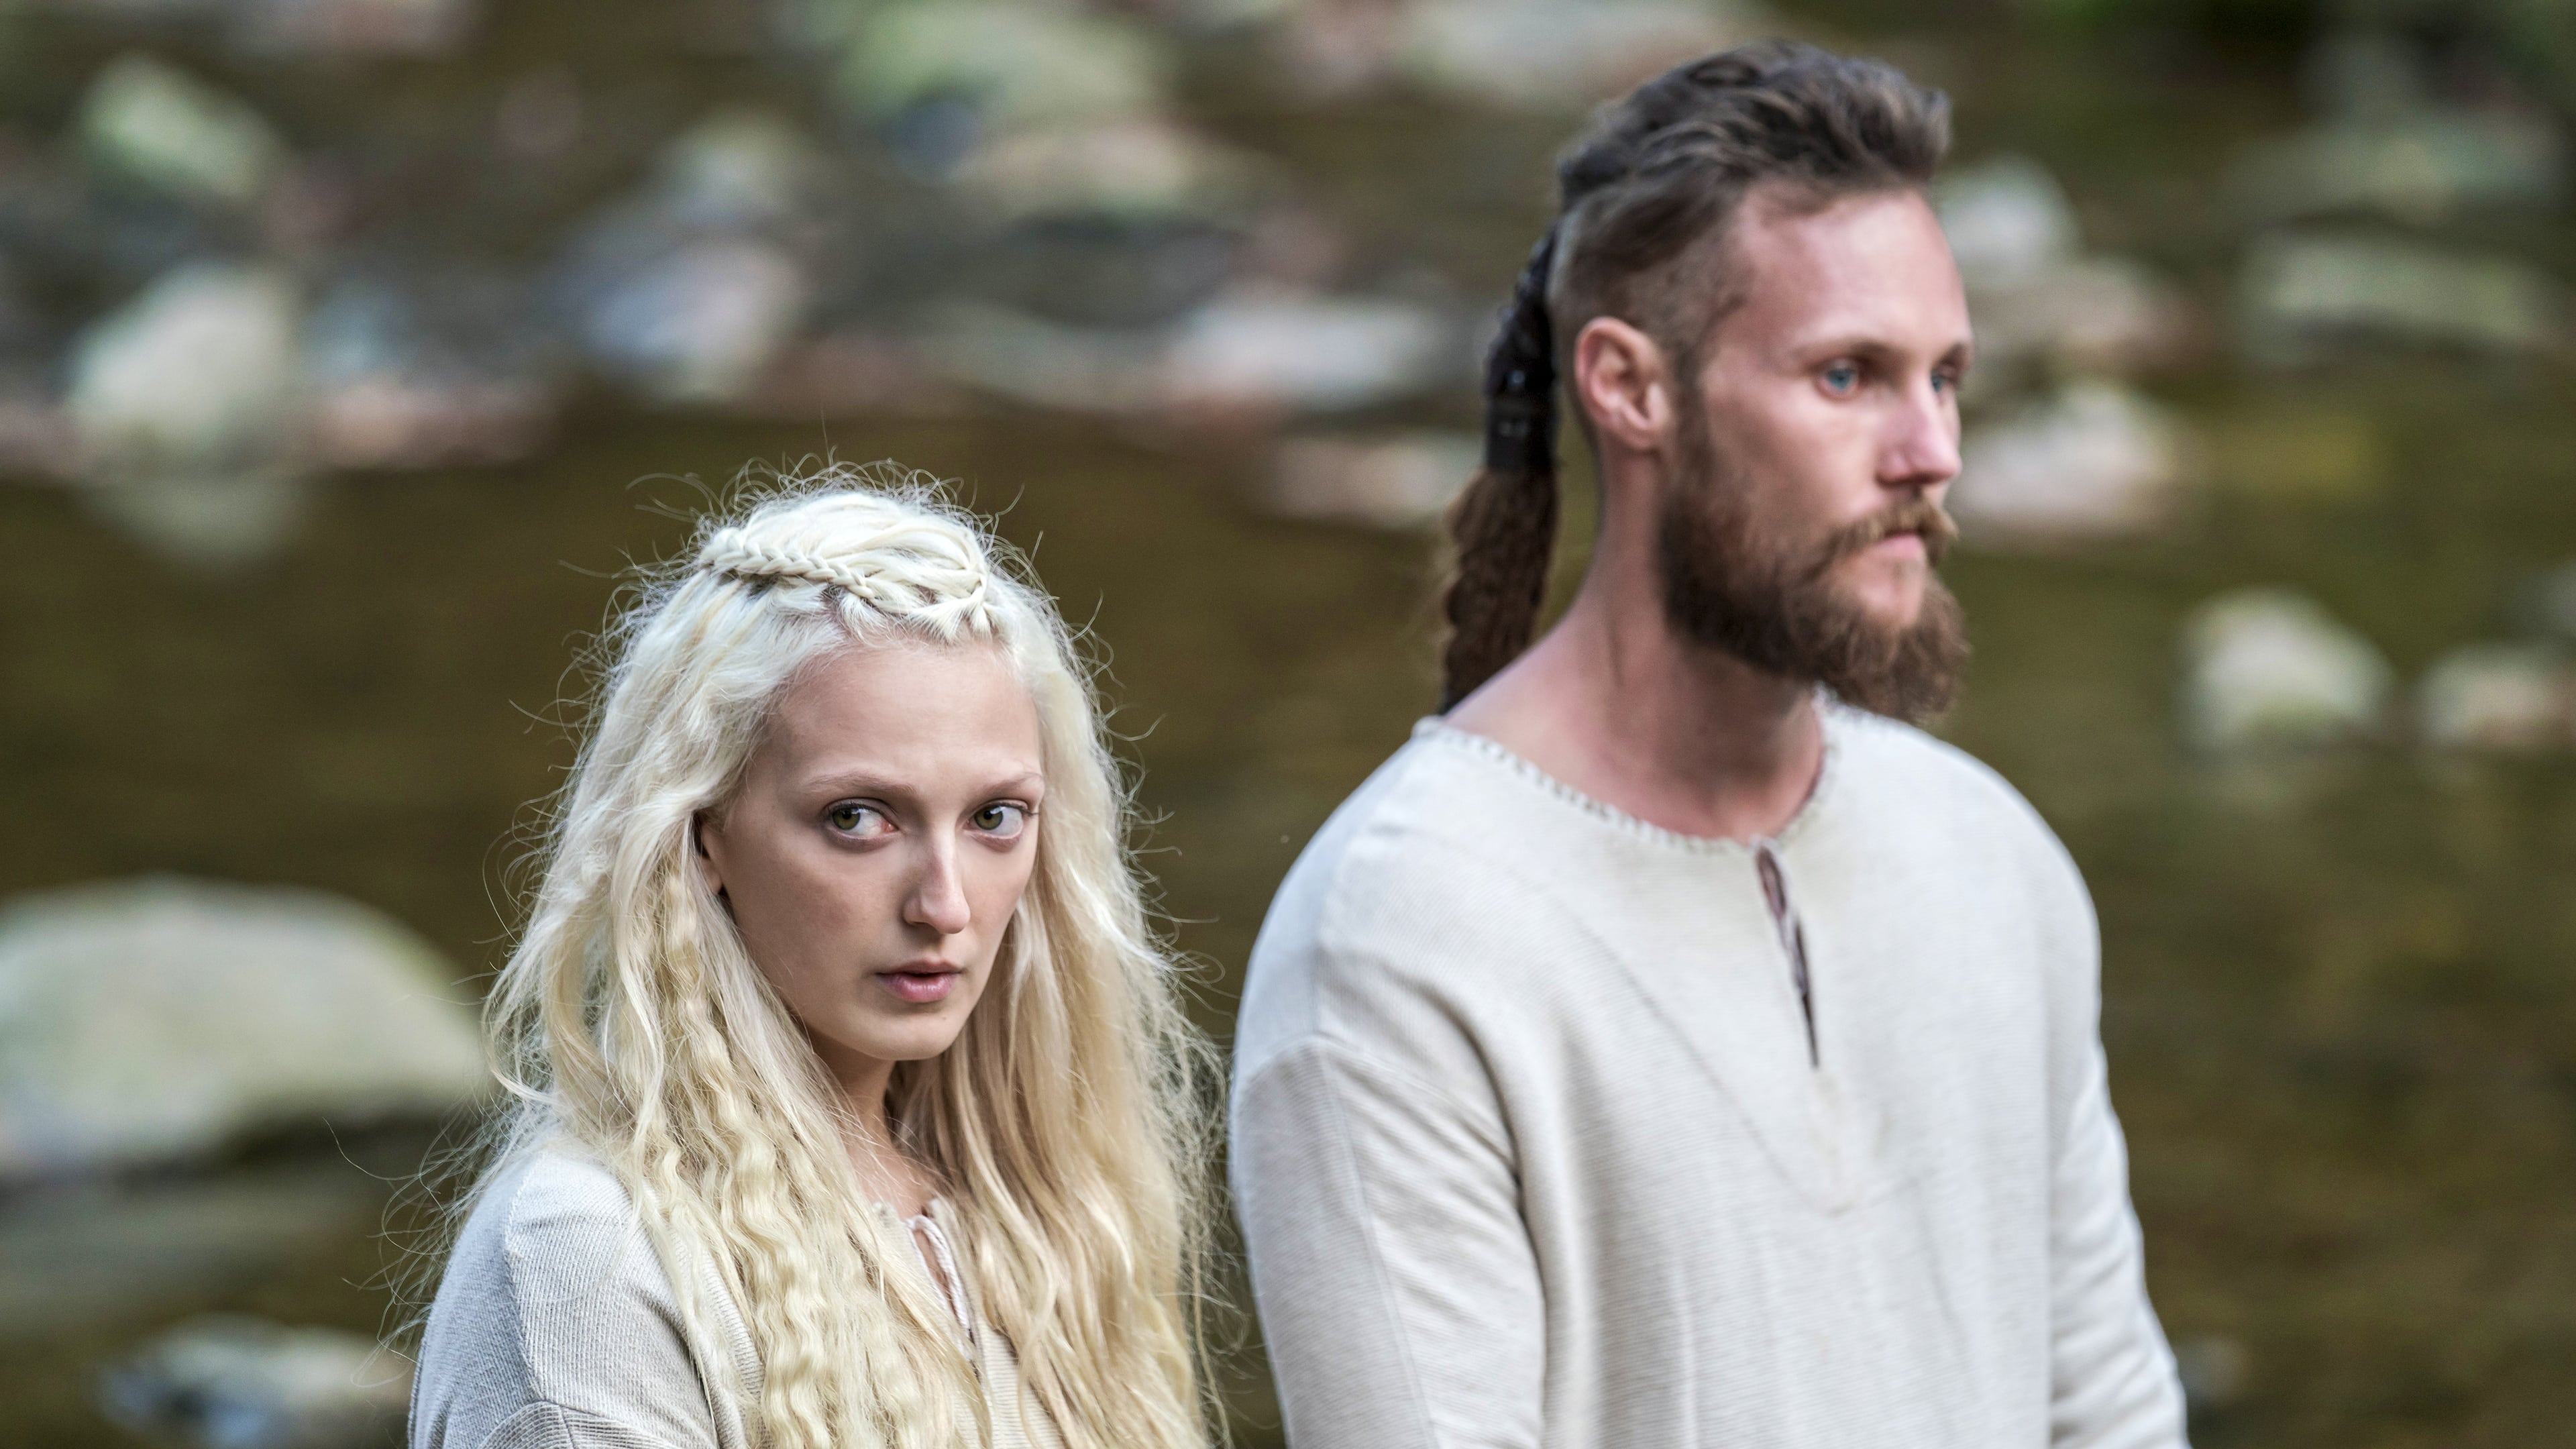 Vikings - Season 5 Episode 13 : A New God